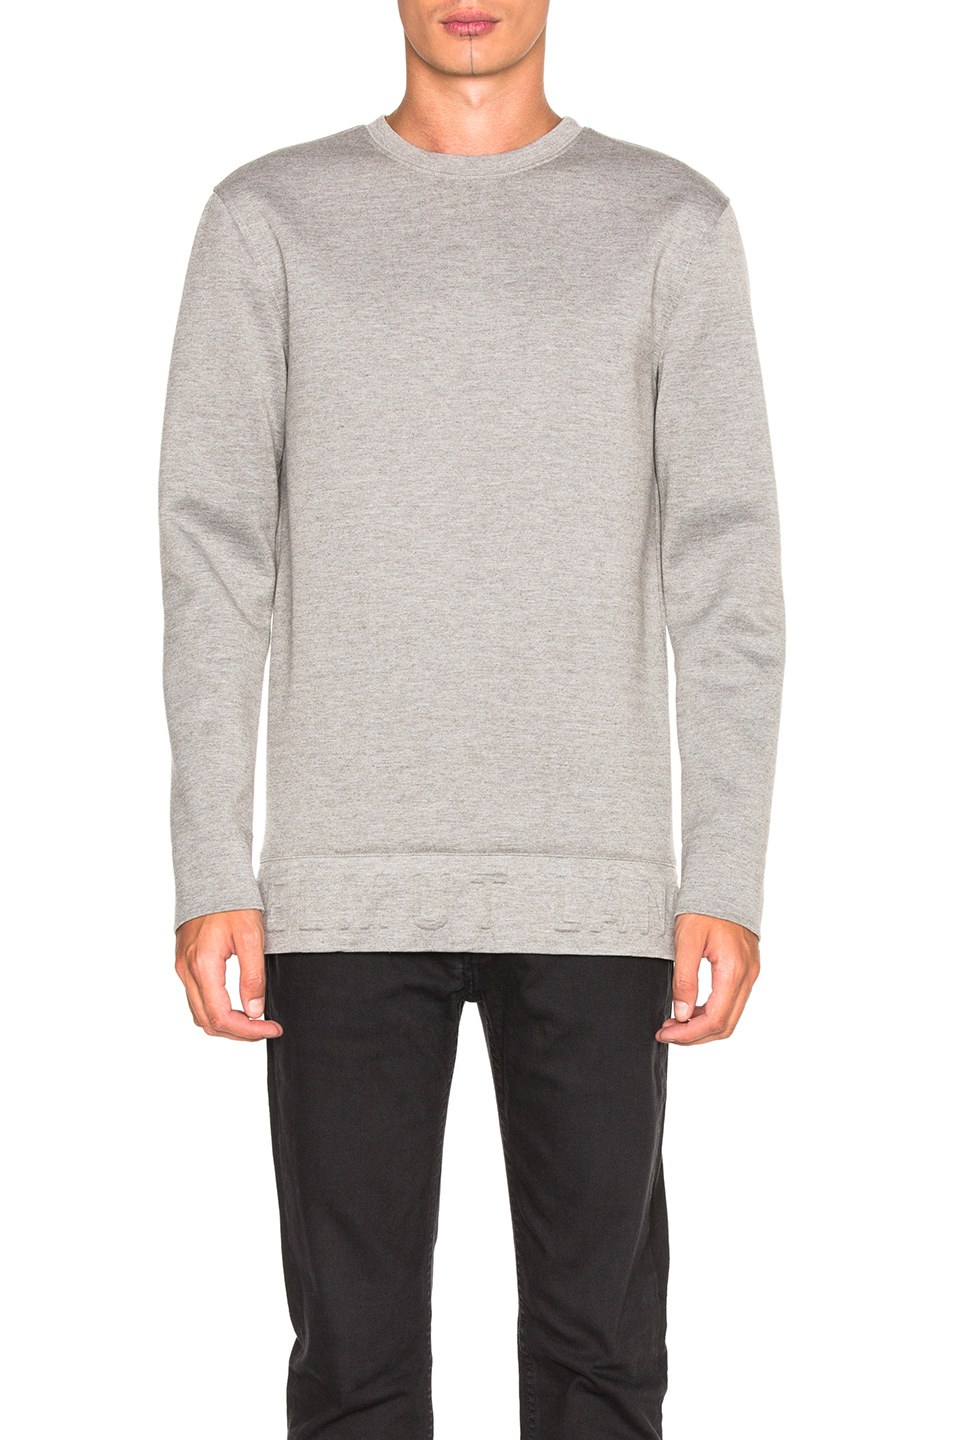 Helmut Lang Neoprene 3D Sweatshirt in Gray